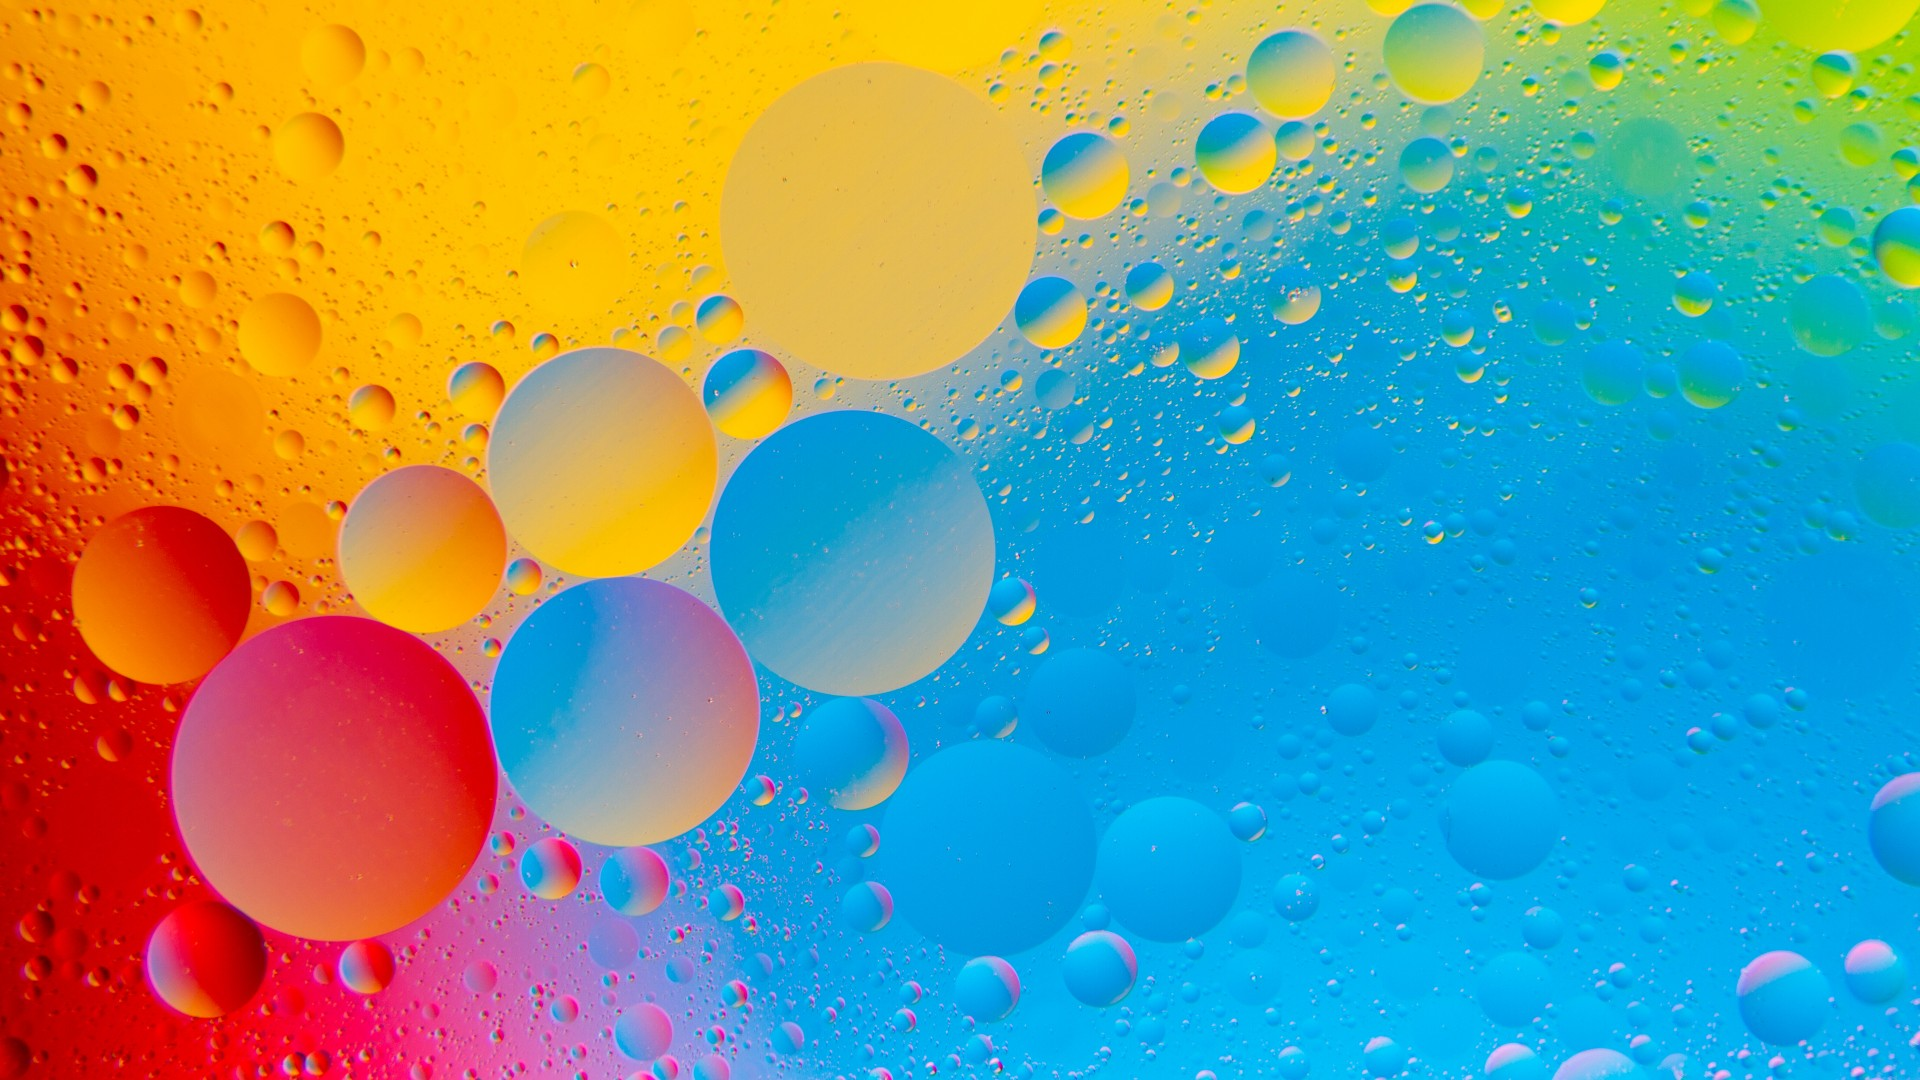 Colourful Bubbles 4k Hd Abstract Wallpaper Iphone 7 Plus